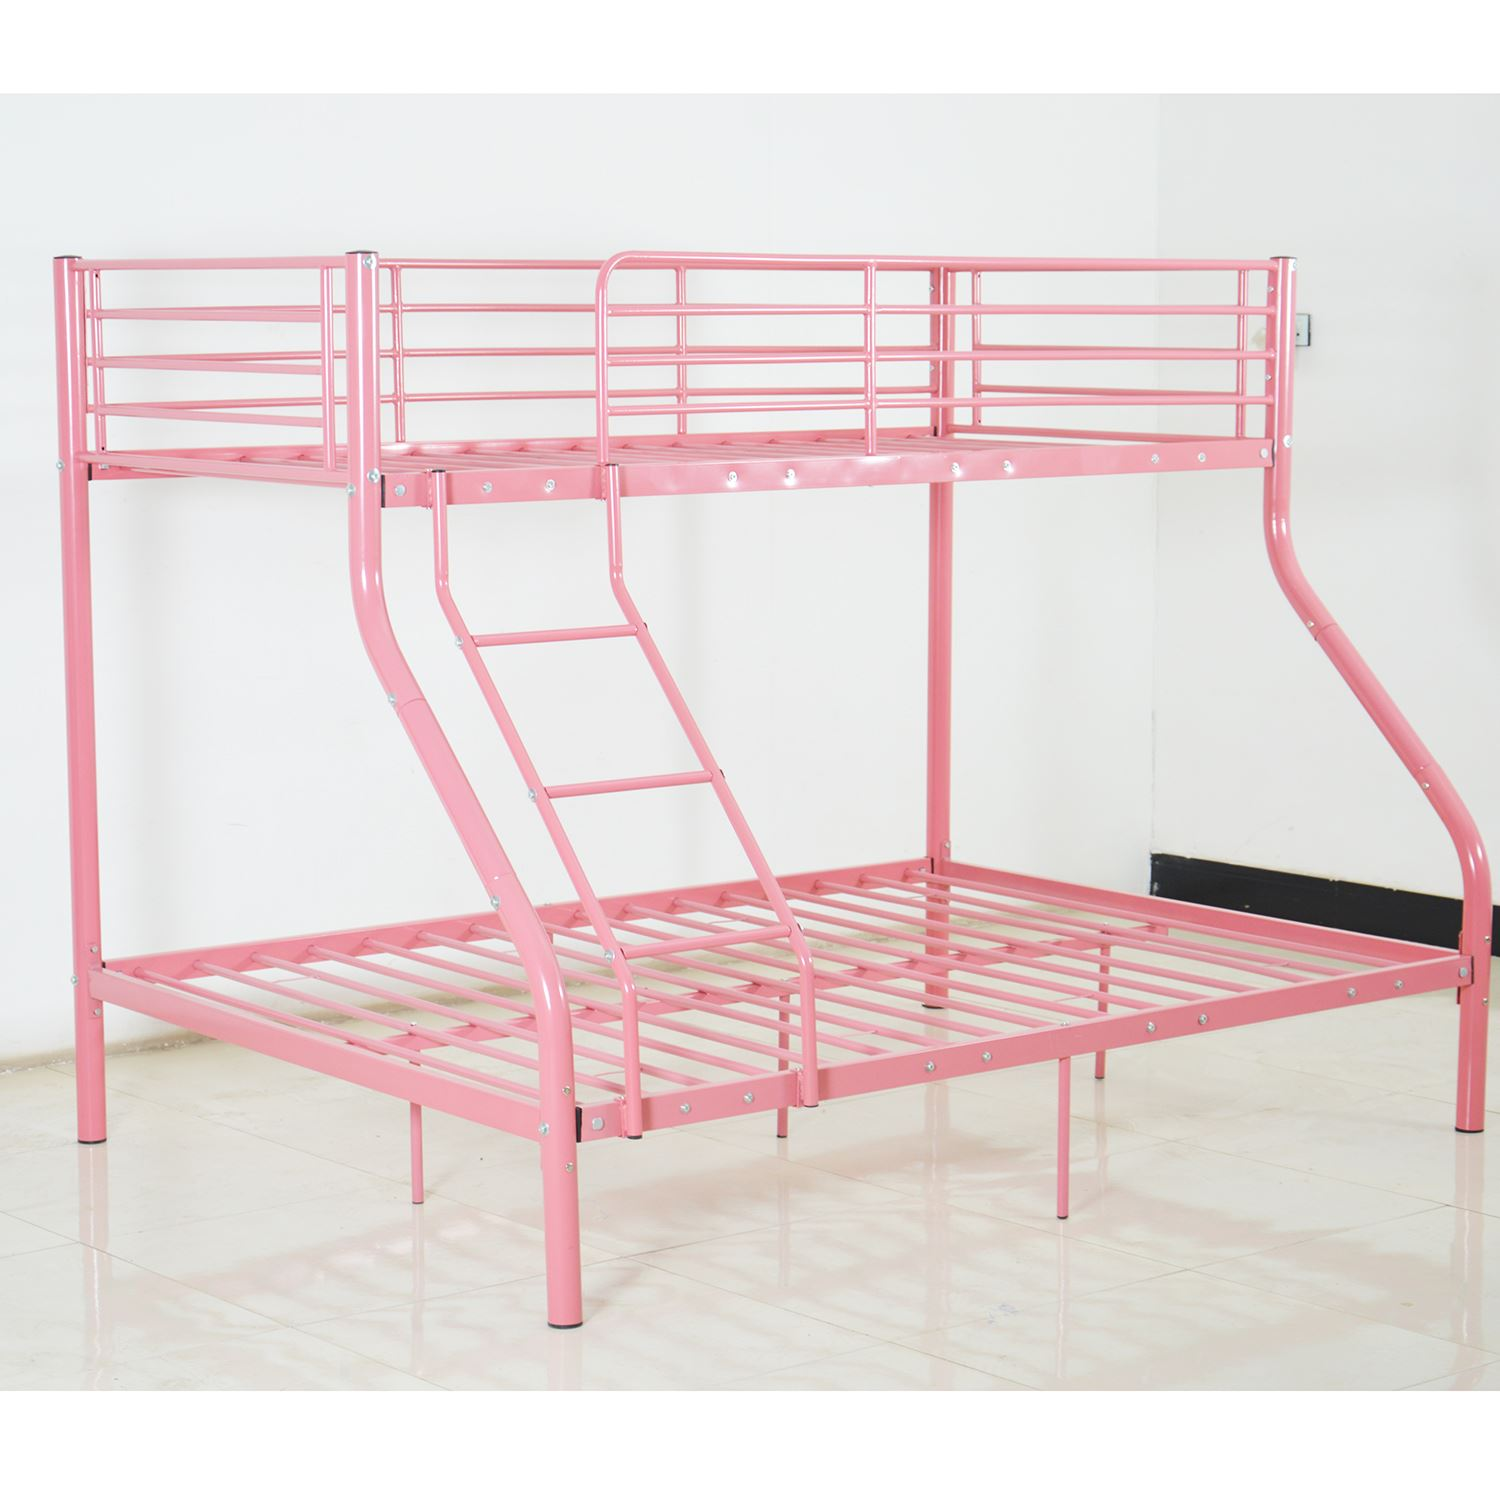 Triple bunk bed children single double metal frame sleeper for Double divan bed no mattress